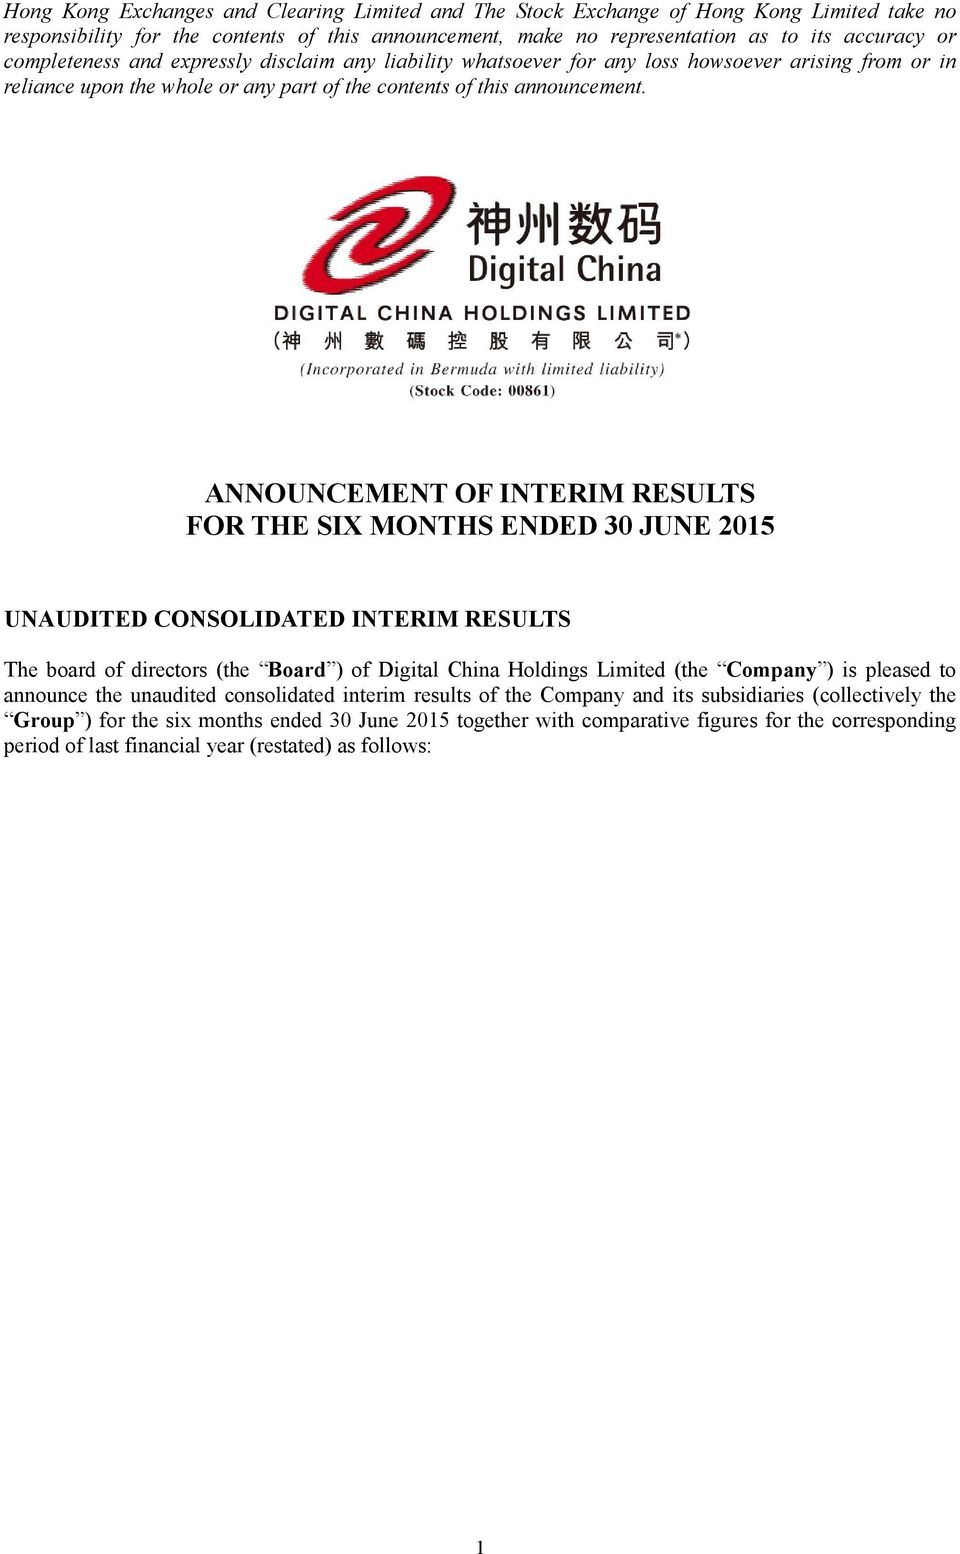 ANNOUNCEMENT OF INTERIM RESULTS FOR THE SIX MONTHS ENDED 30 JUNE 2015 UNAUDITED CONSOLIDATED INTERIM RESULTS The board of directors (the Board ) of Digital China Holdings Limited (the Company ) is